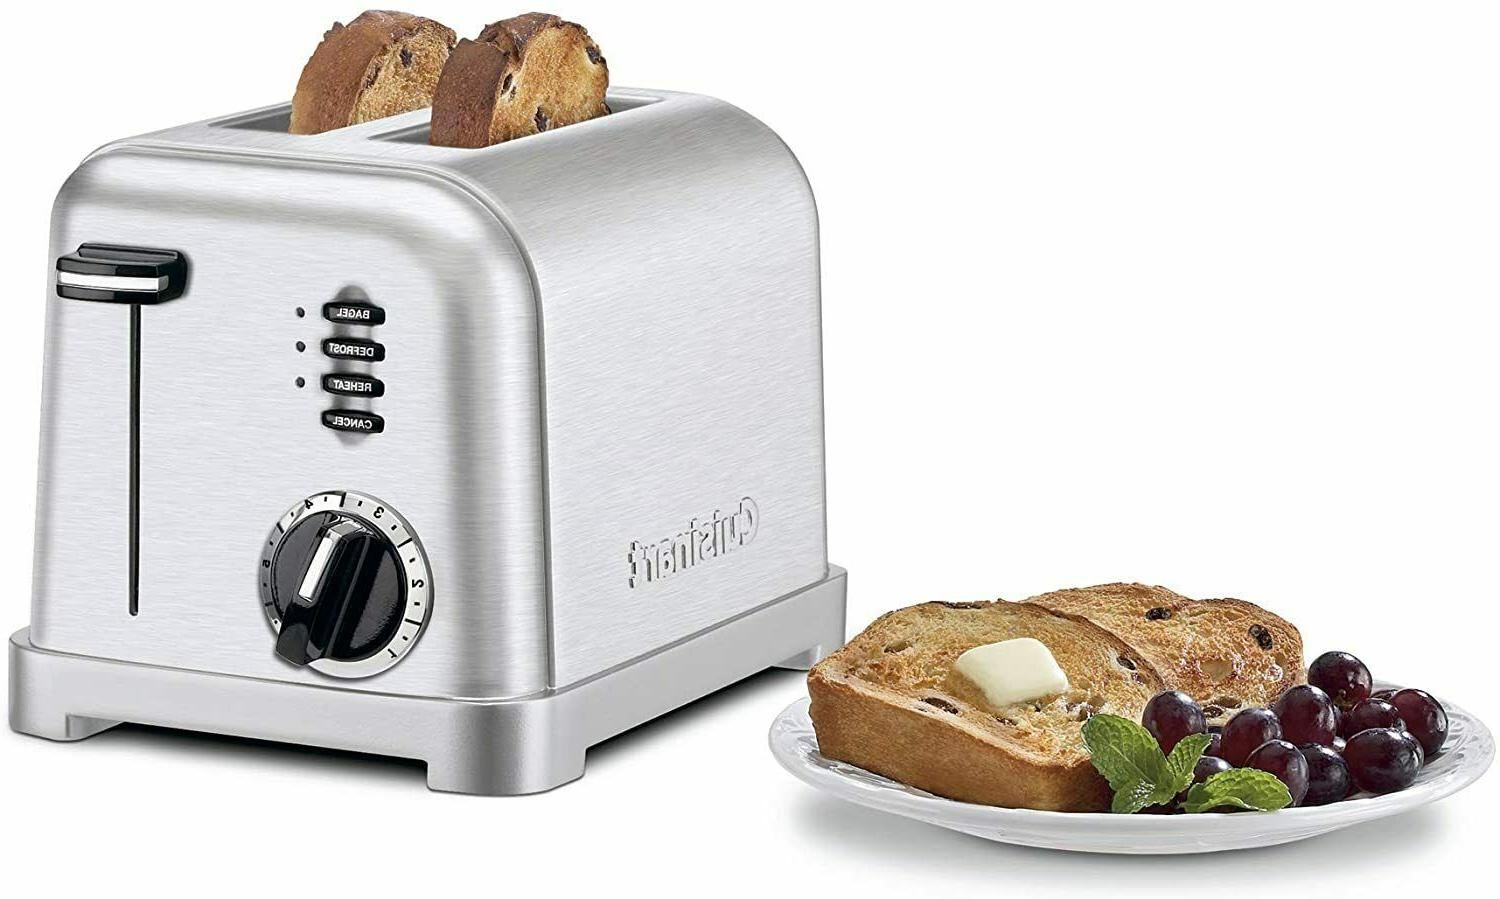 Cuisinart CPT-160P1 2-Slice Toaster Brushed Stainless